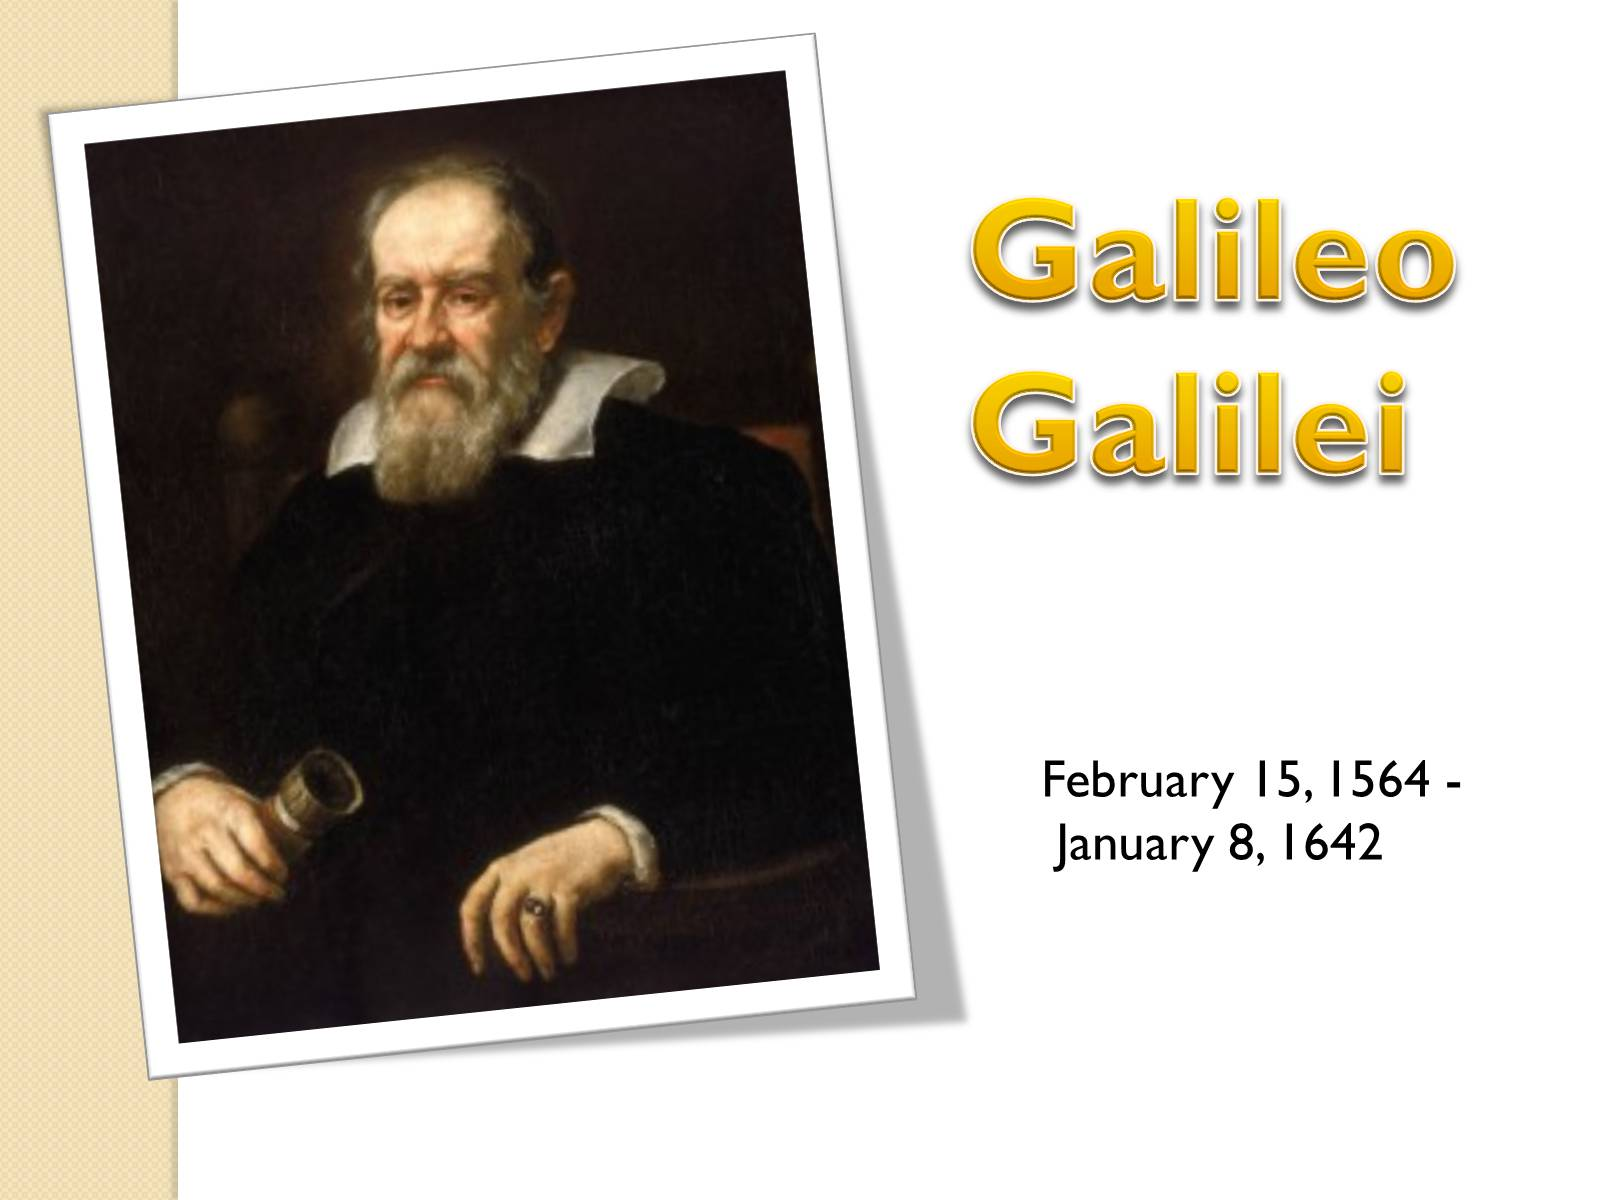 a biography of galileo galilei the first known physicist An essay or paper on galileo galilei, the first known physicist many individuals in history have been accredited for numerous accomplishments like galileo galilei, the first known physicist.